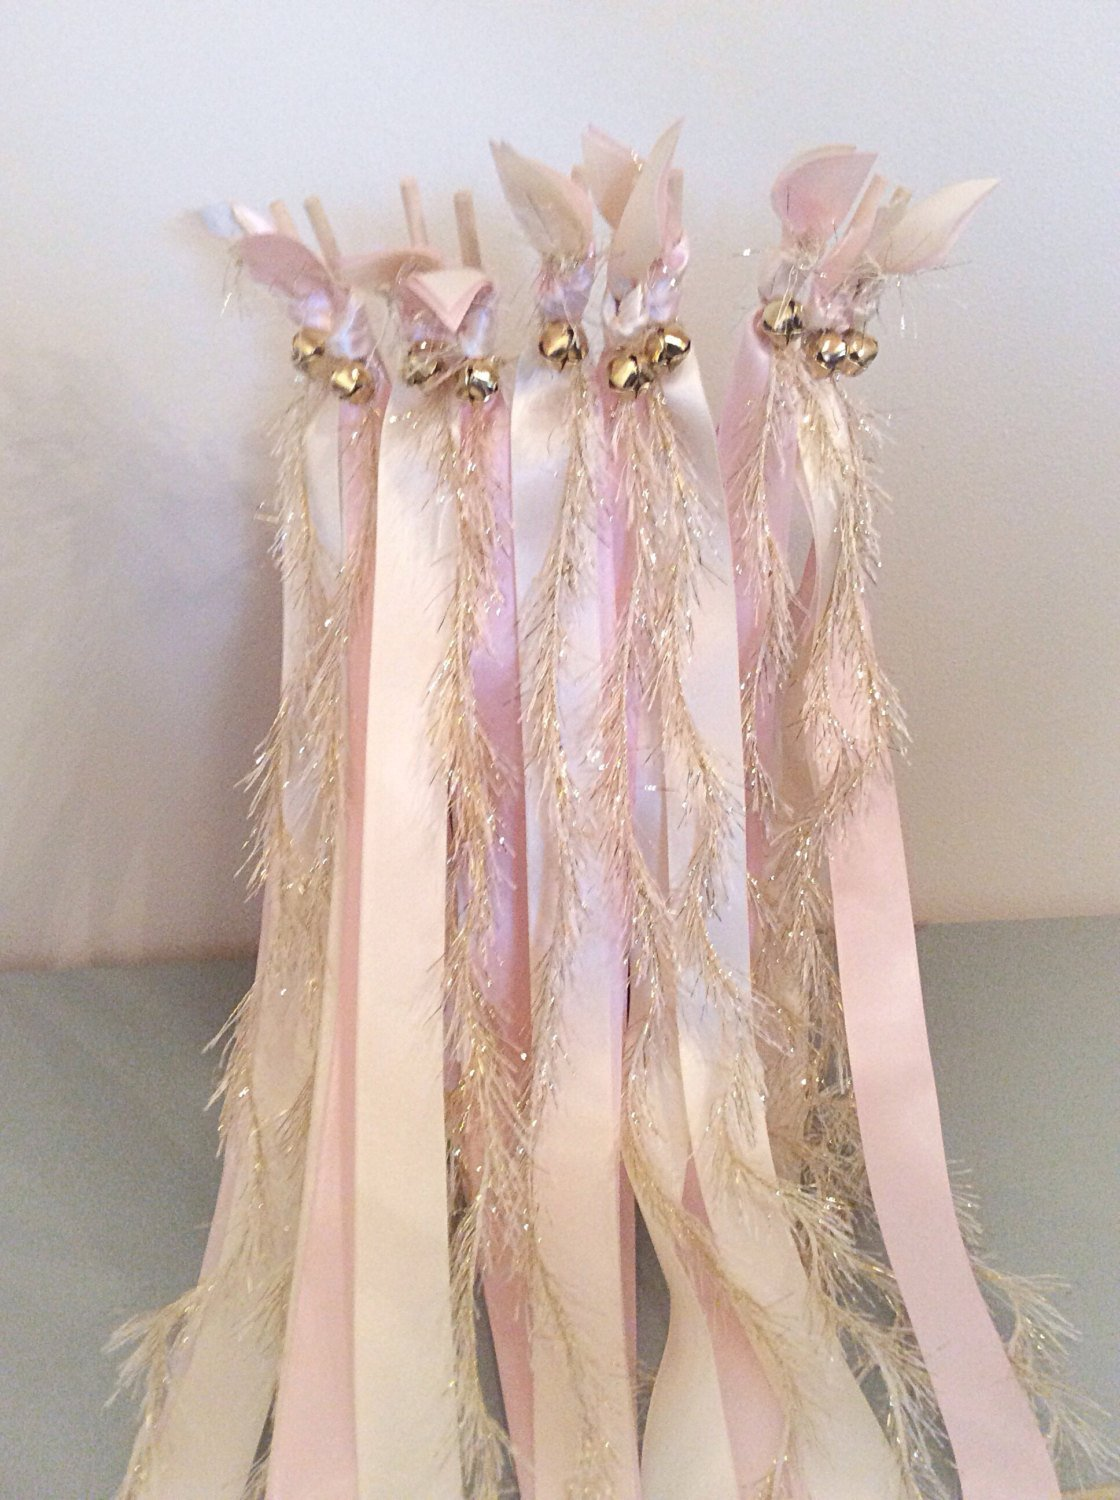 100 wedding wands ivory and light pink send off ribbon streamers with gold frayed ribbon